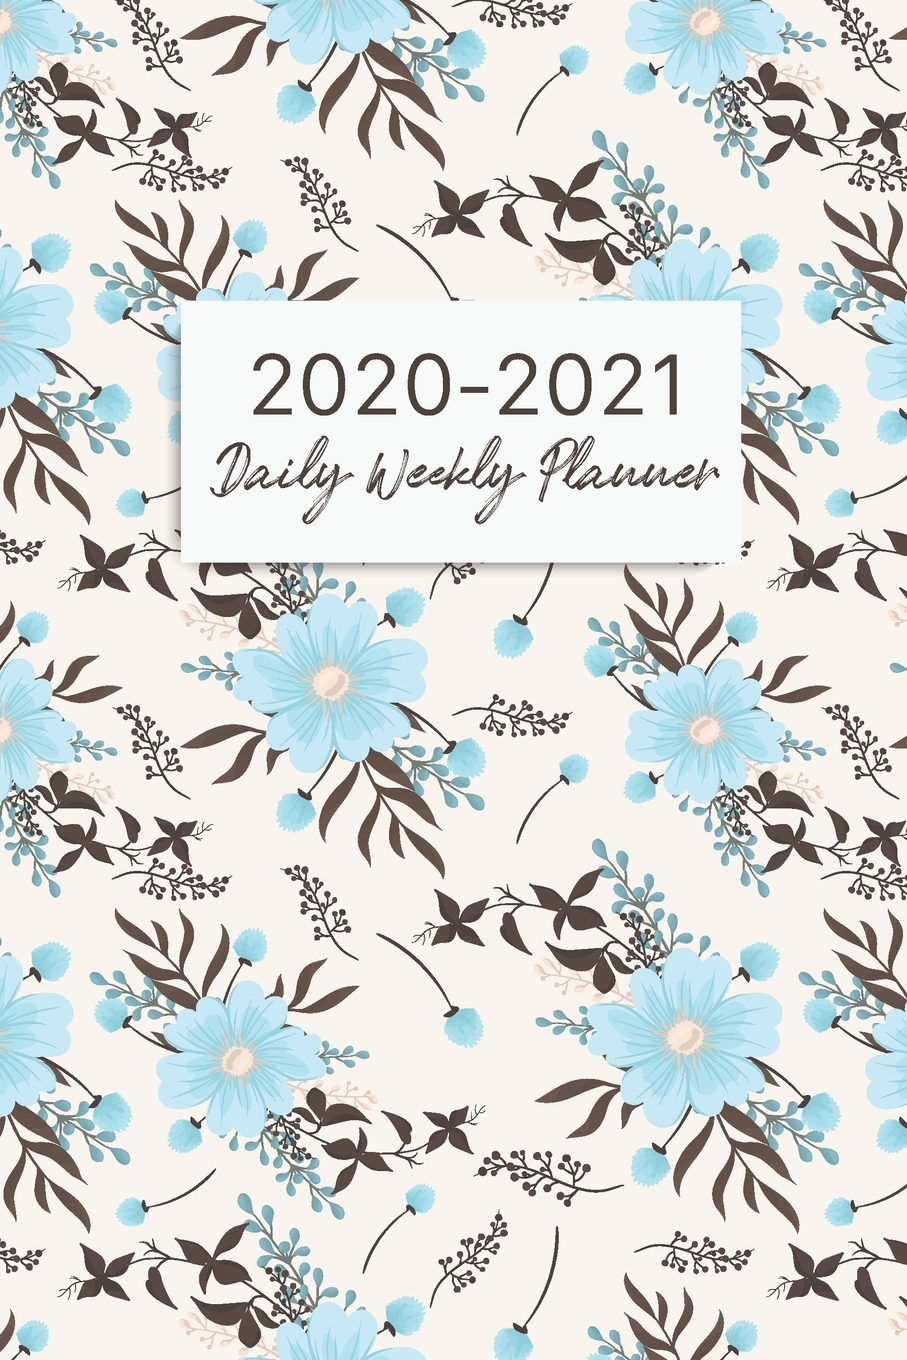 2 Year Daily Weekly Monthly Planner, January 2020 To inside 2021-2021 Planner: 2-Year Planner